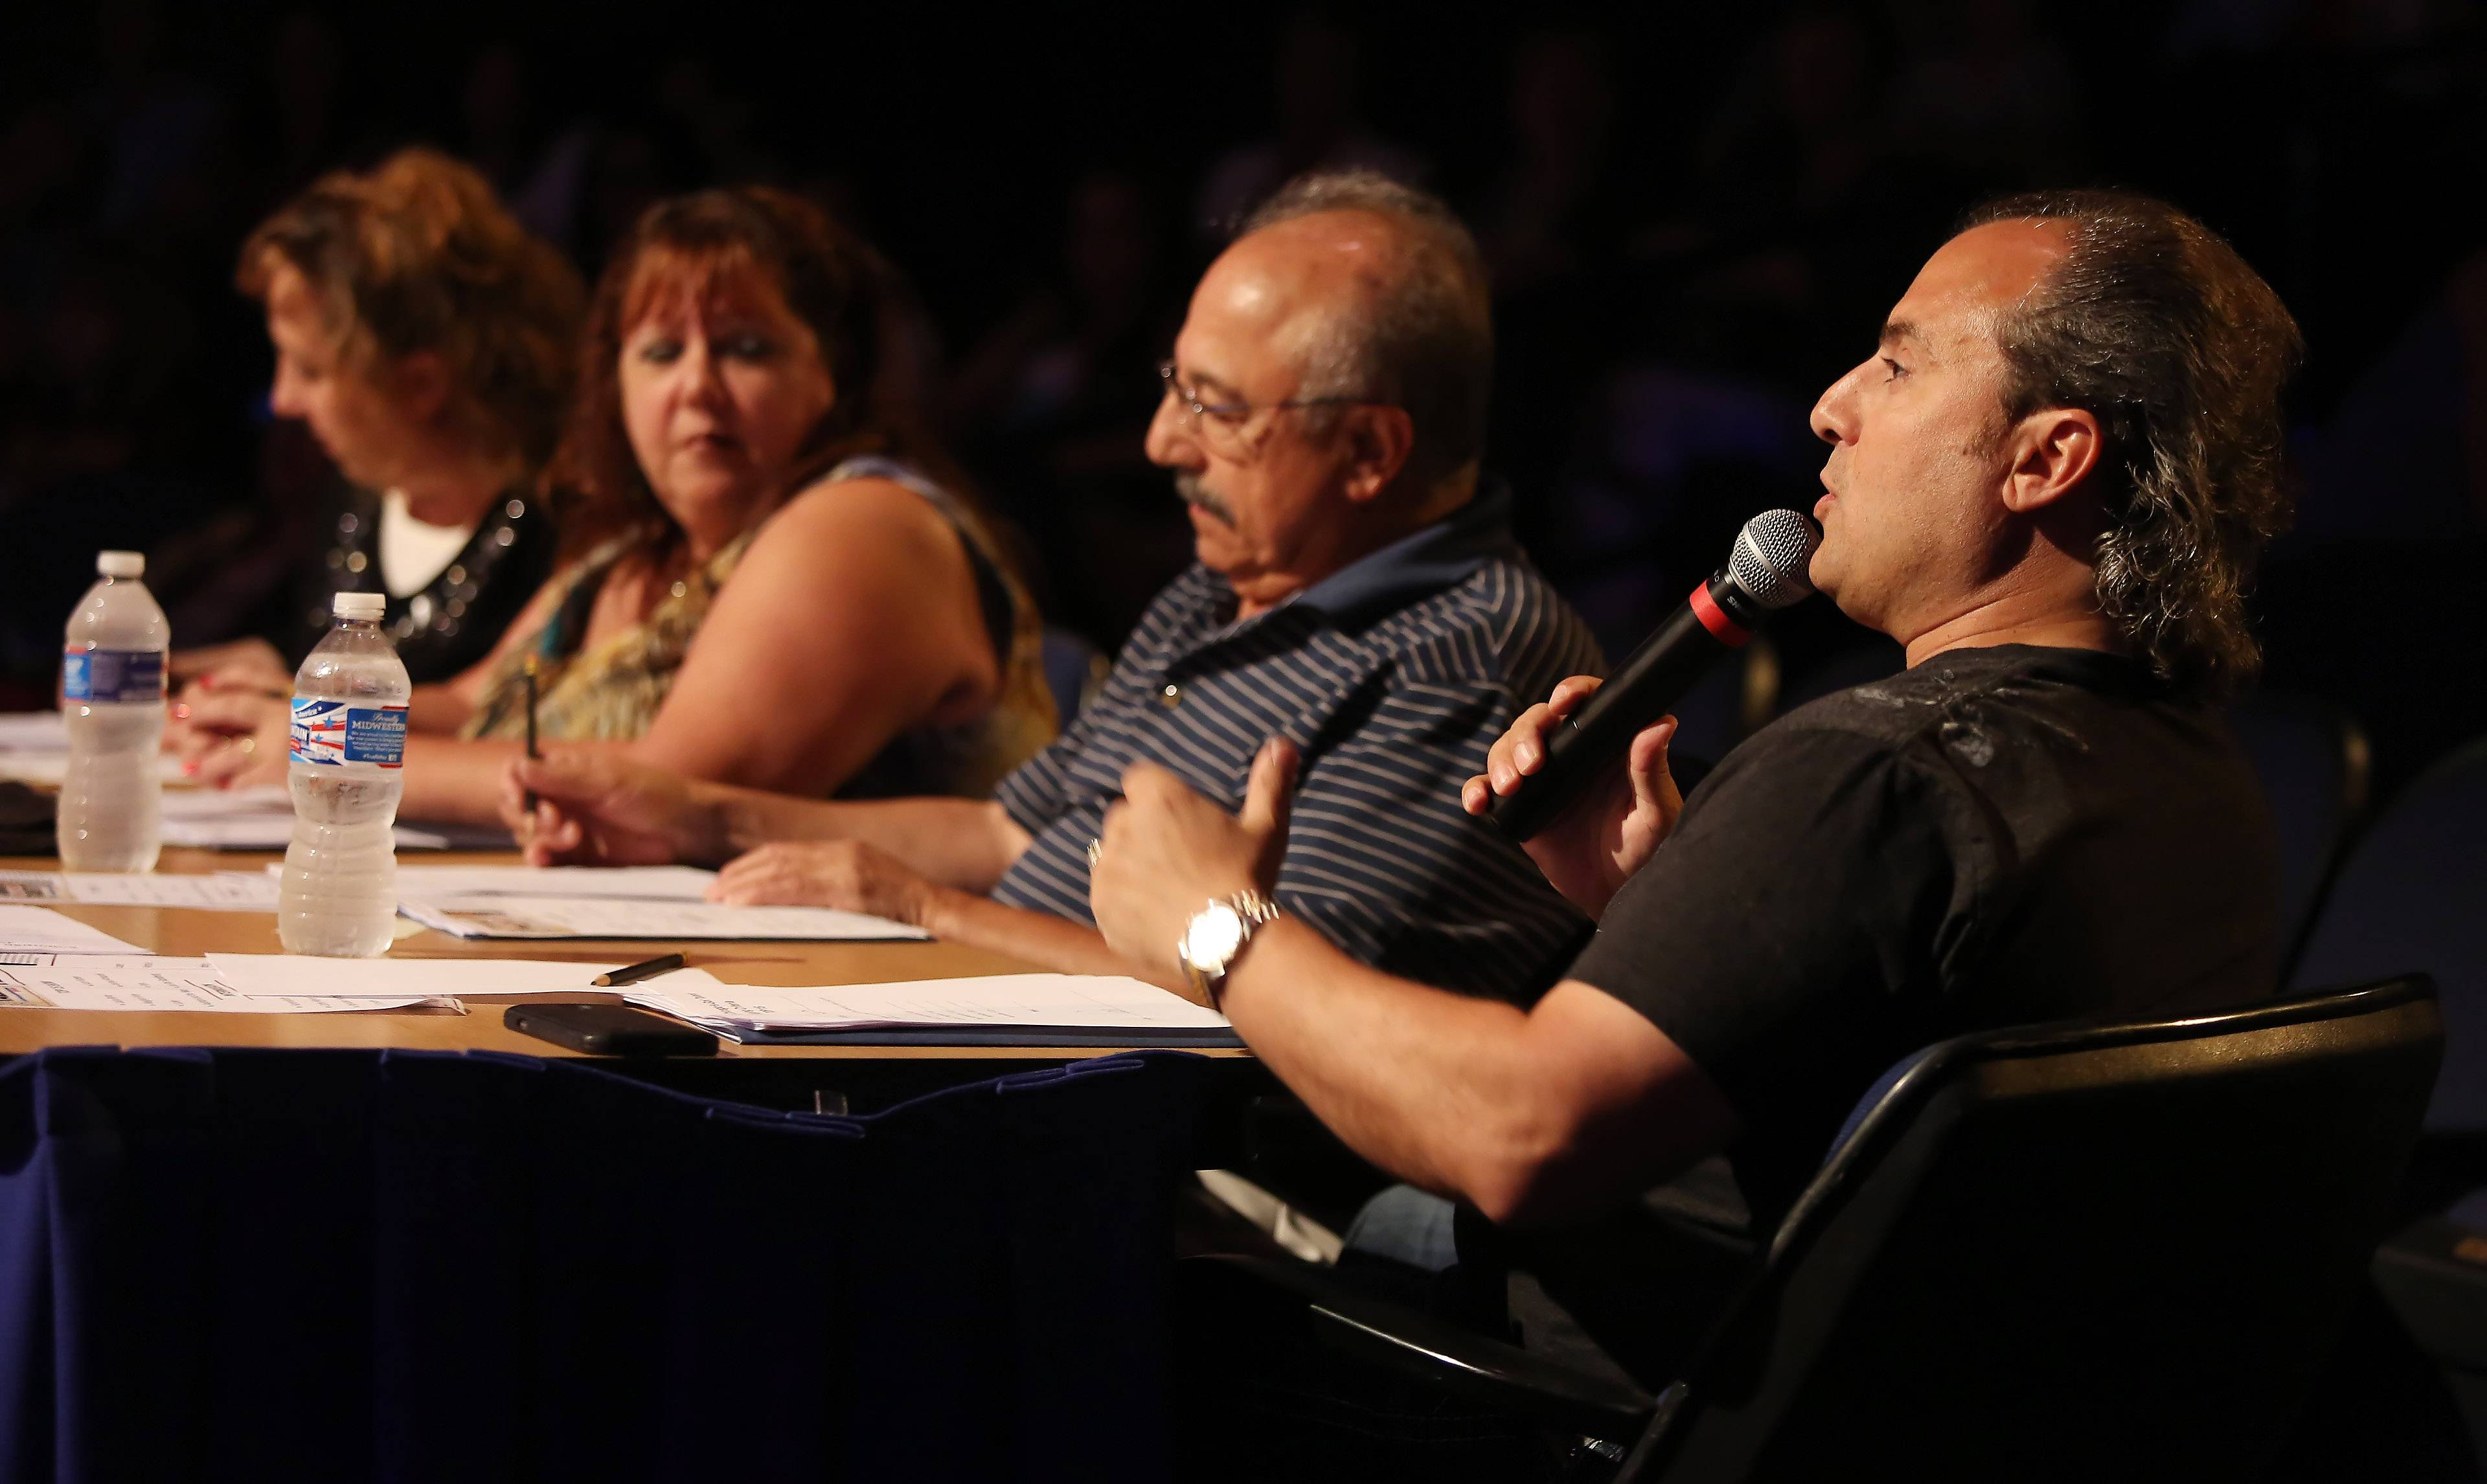 Suburban Chicago's Got Talent judges Barbara Vitello, left, Beth Waller, John Flamini and Ron Onesti have helped bring the field down to a Top 10.